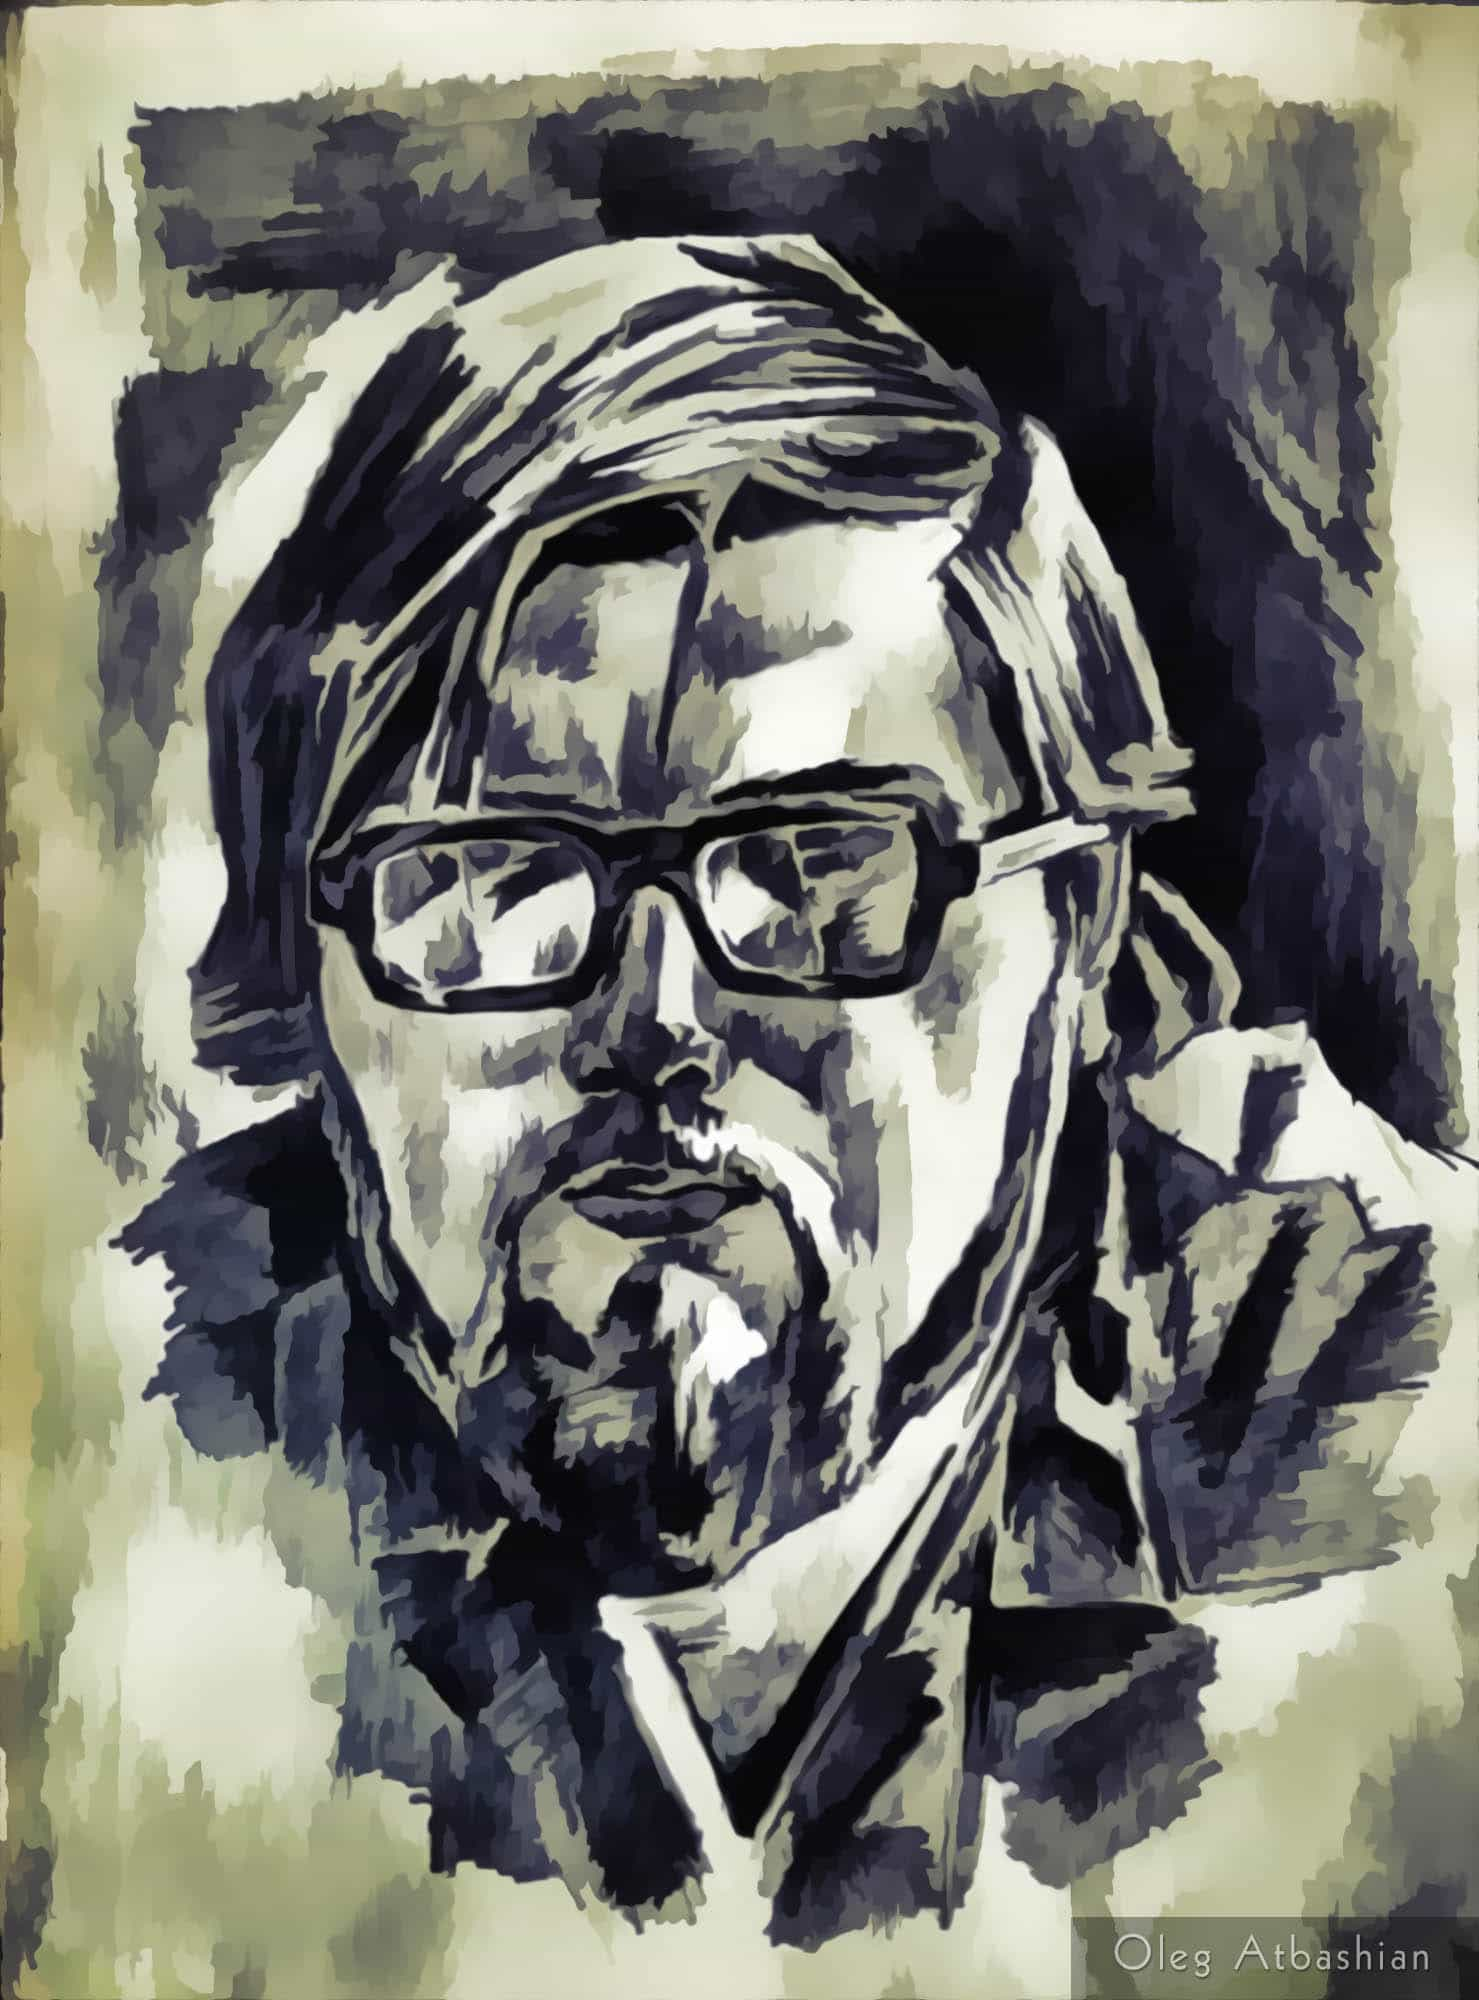 Man with Cracked Glasses